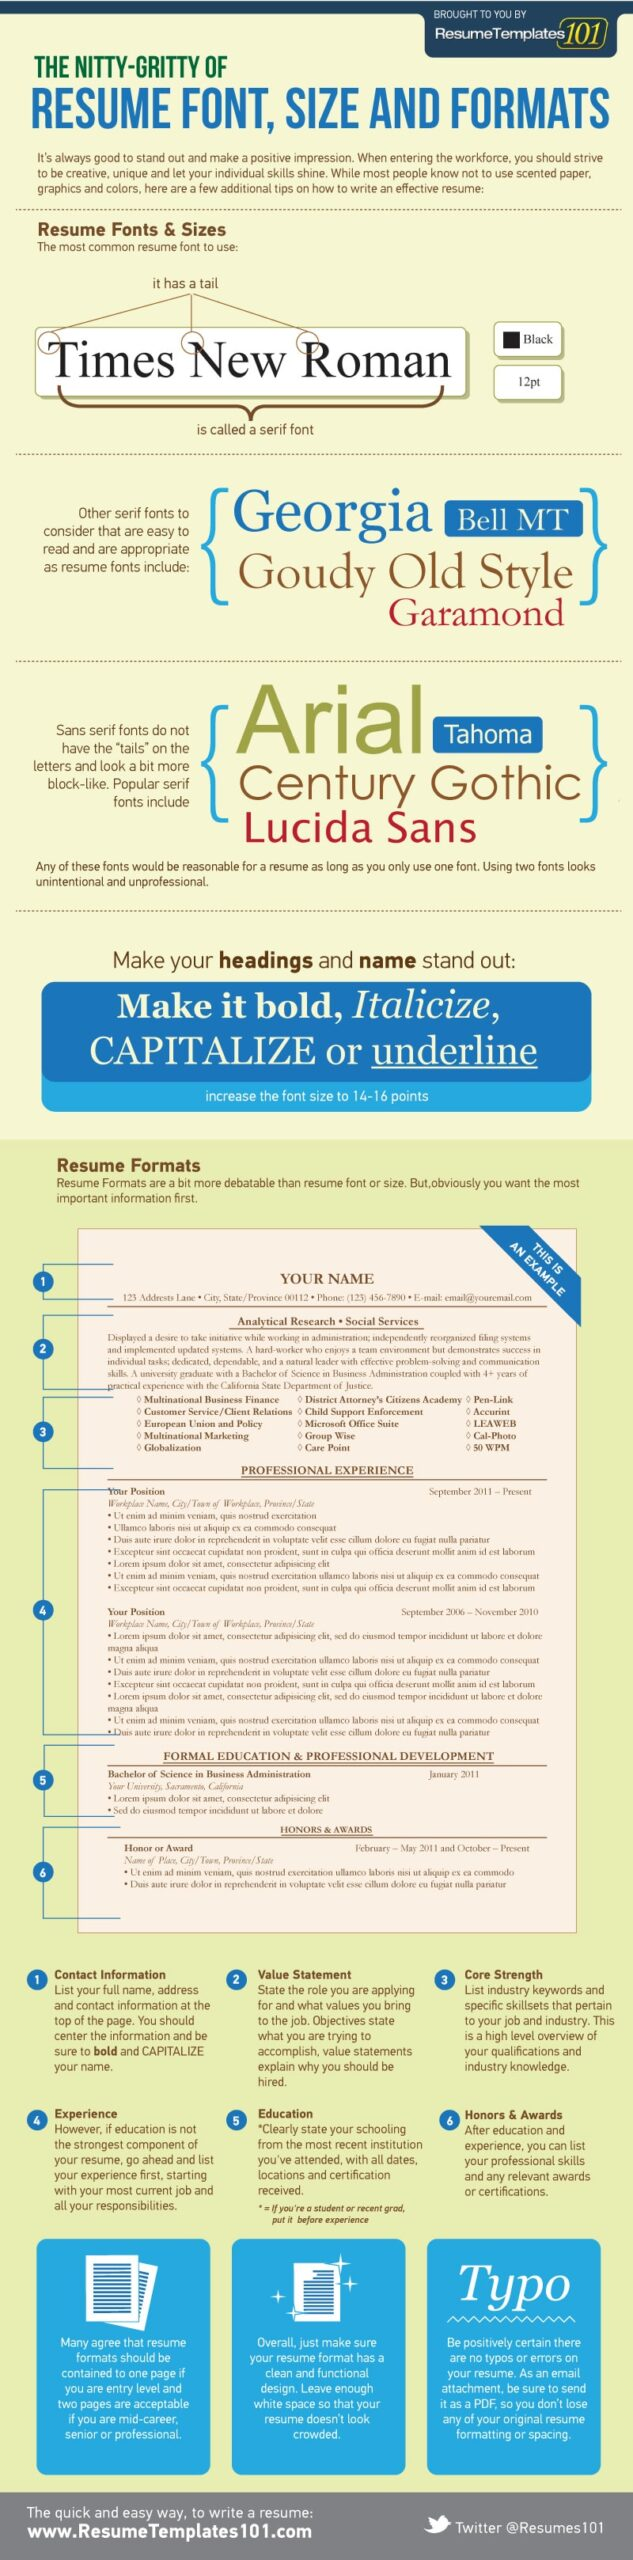 the best resume font size and format of for fonts bld builder templates mechanical Resume Size Of Font For Resume